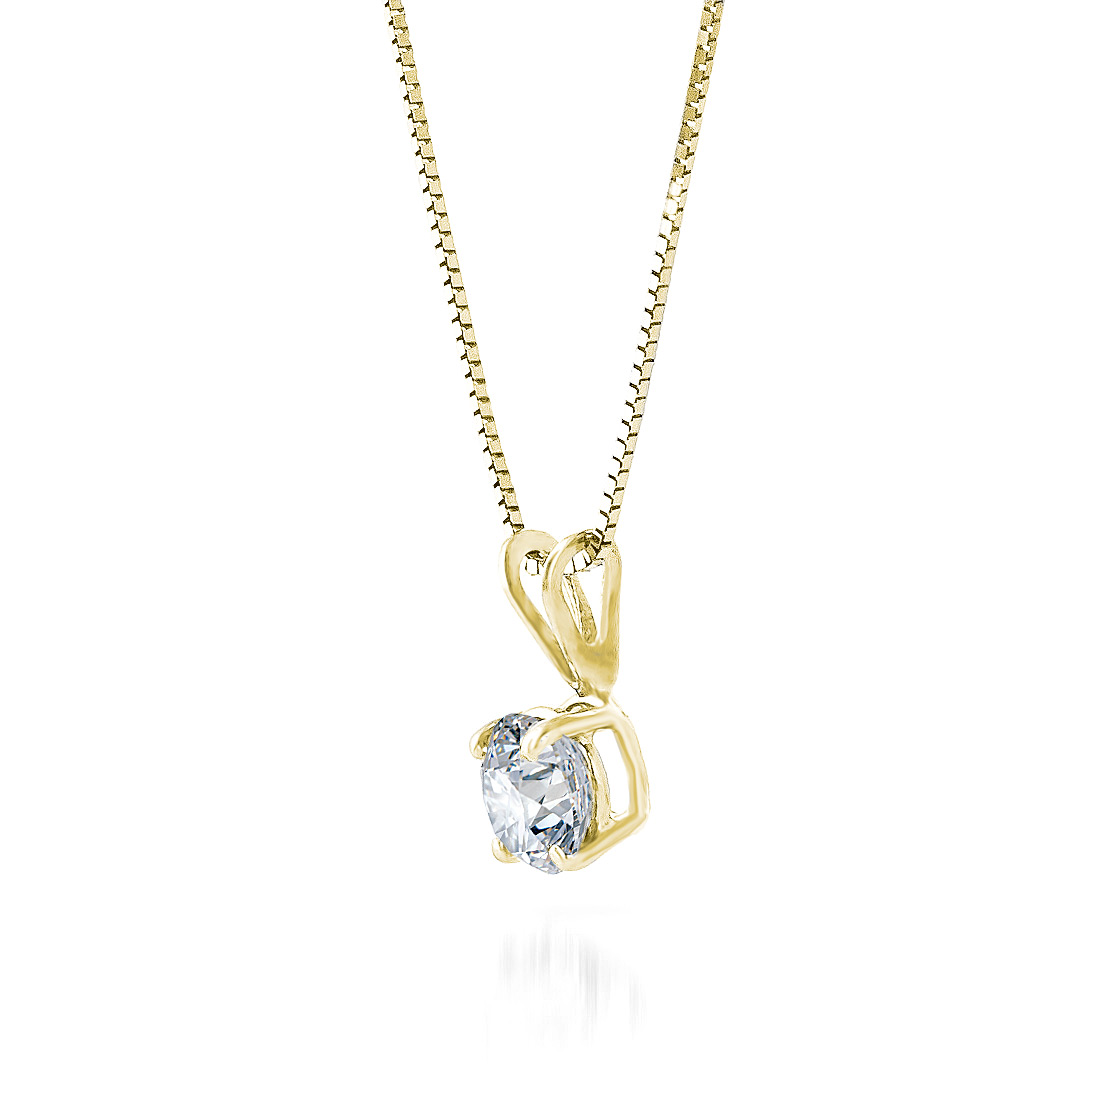 Round cut diamond pendant necklace 05 ct in 9ct gold 3840y qp round cut diamond pendant necklace 05 ct in 9ct gold aloadofball Images